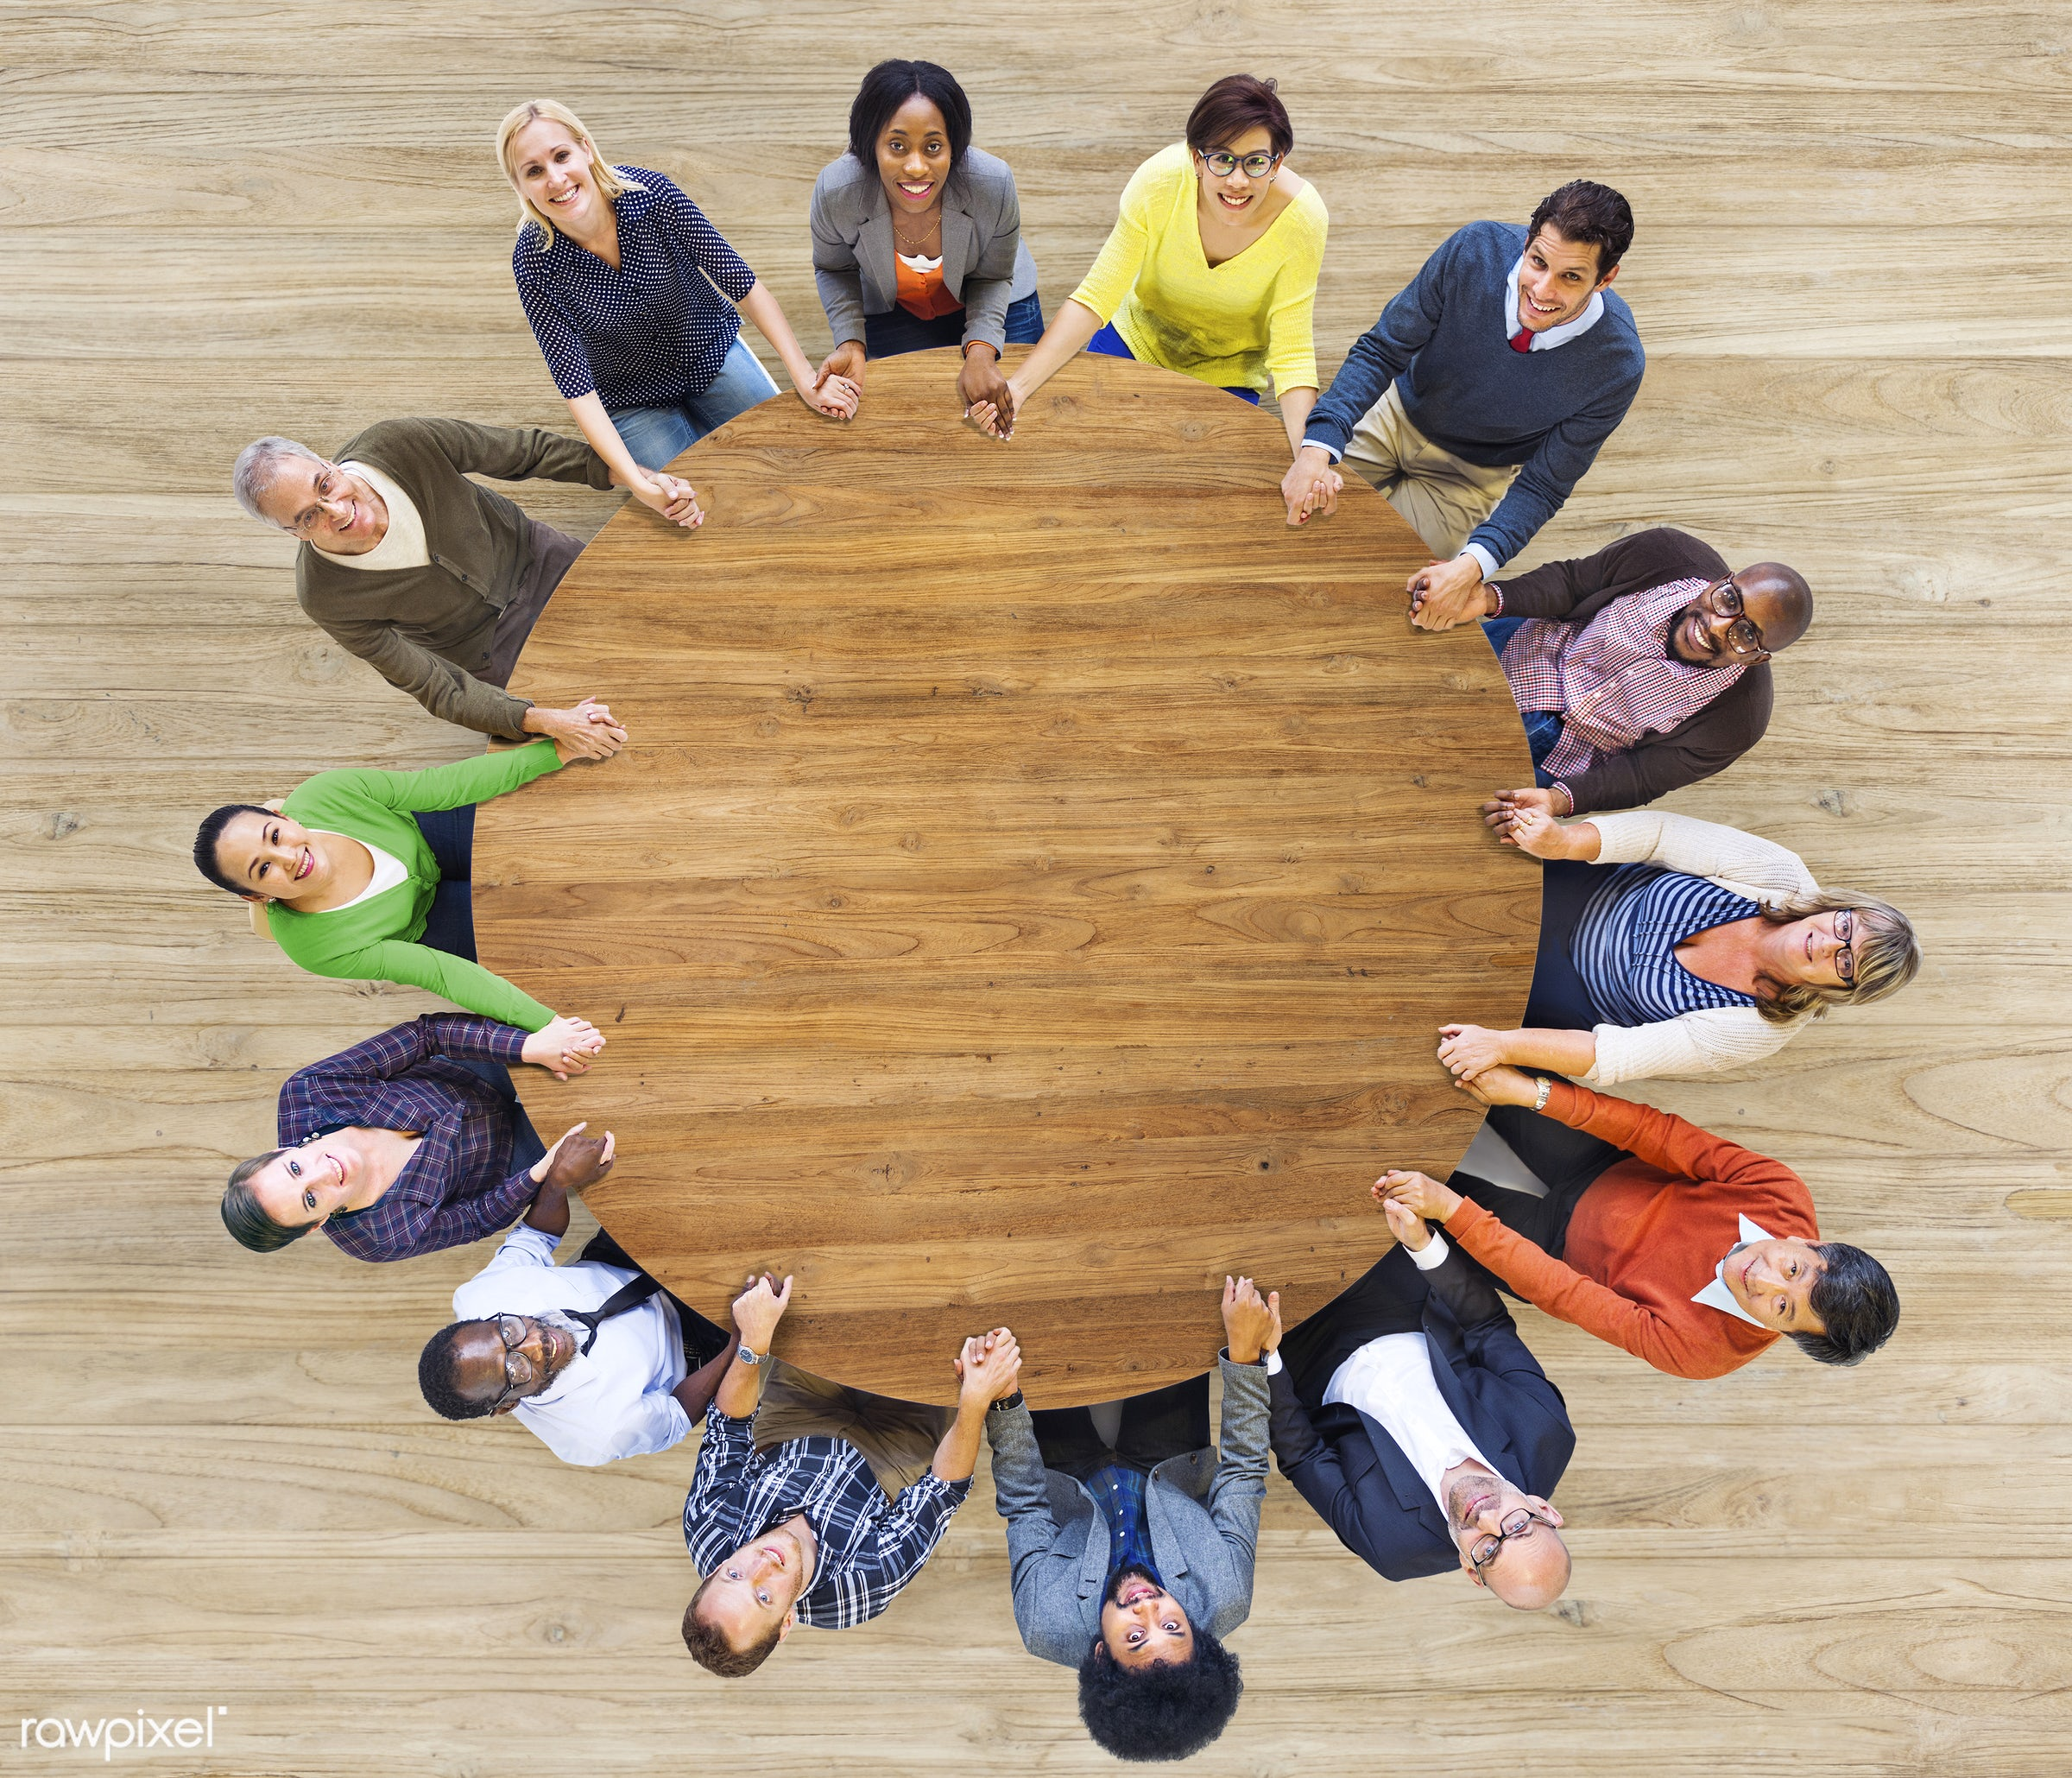 holding, aerial view, brainstorming, circle, colorful, community, concepts, conference, cooperation, diverse, diversity,...